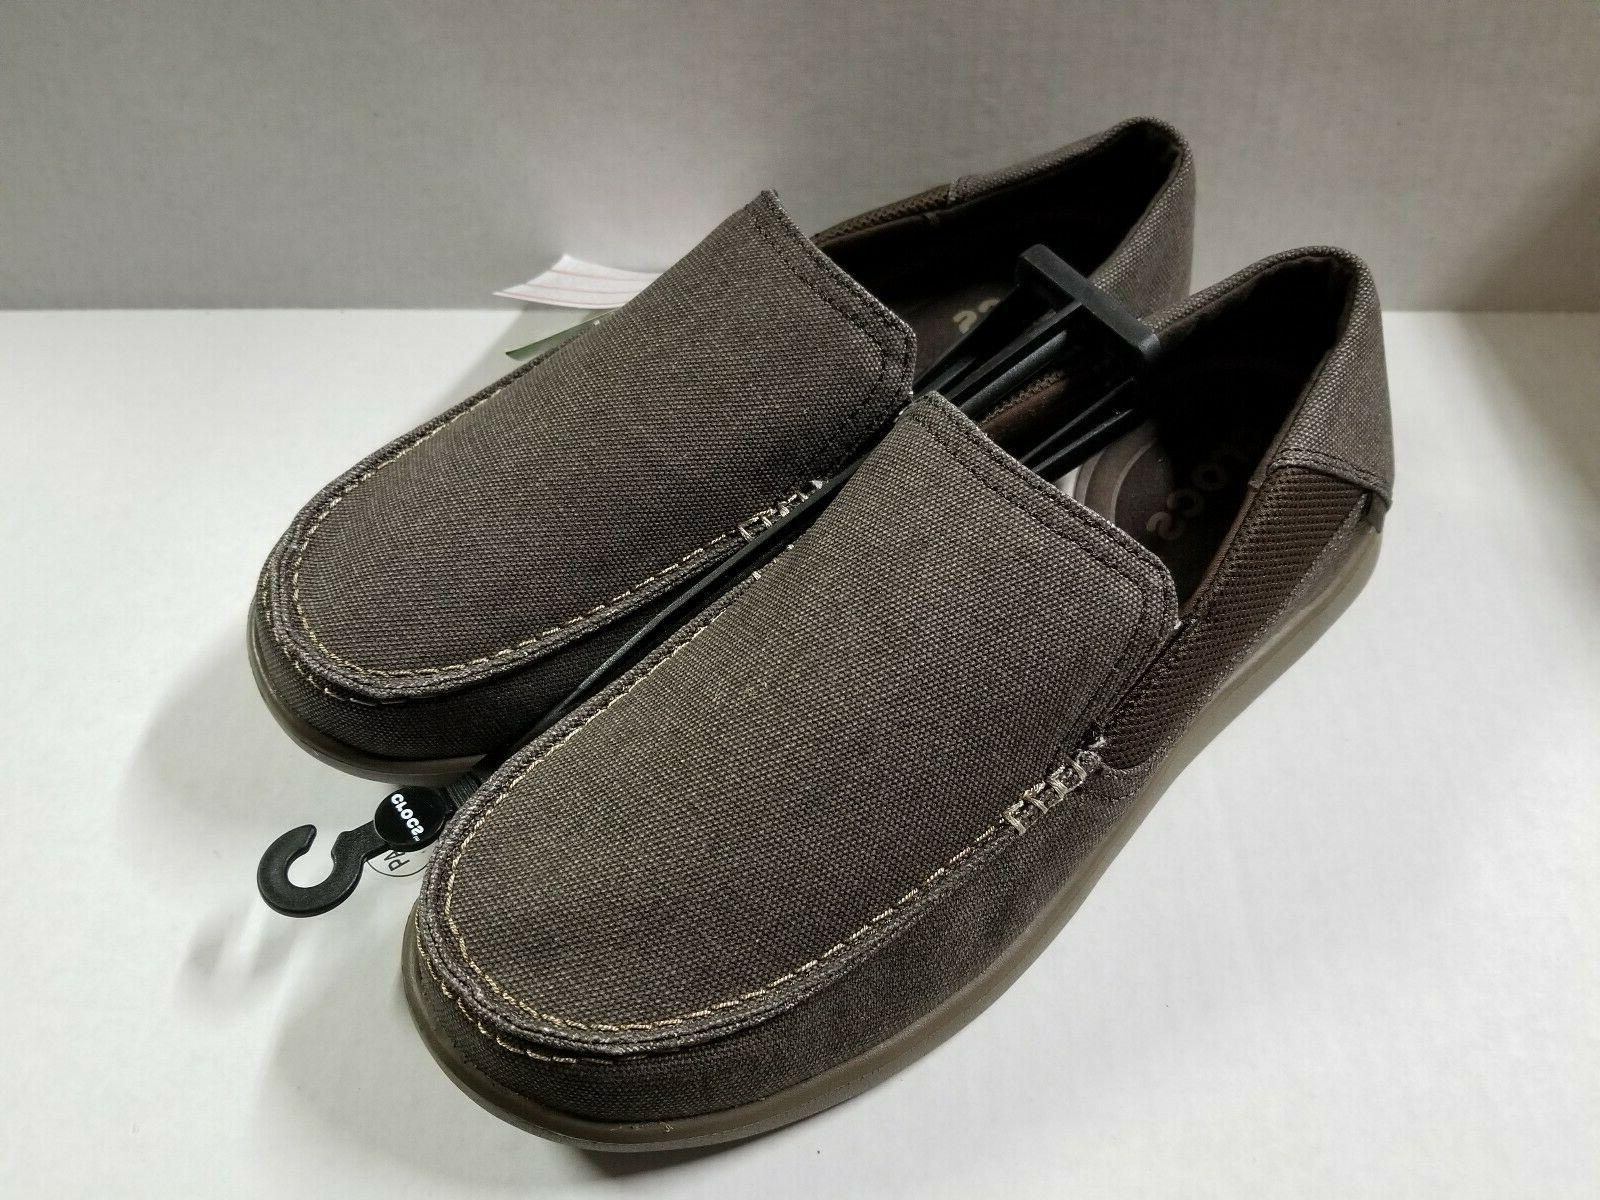 New Men's Crocs Santa Cruz Luxe Slip-ons Shoes 9